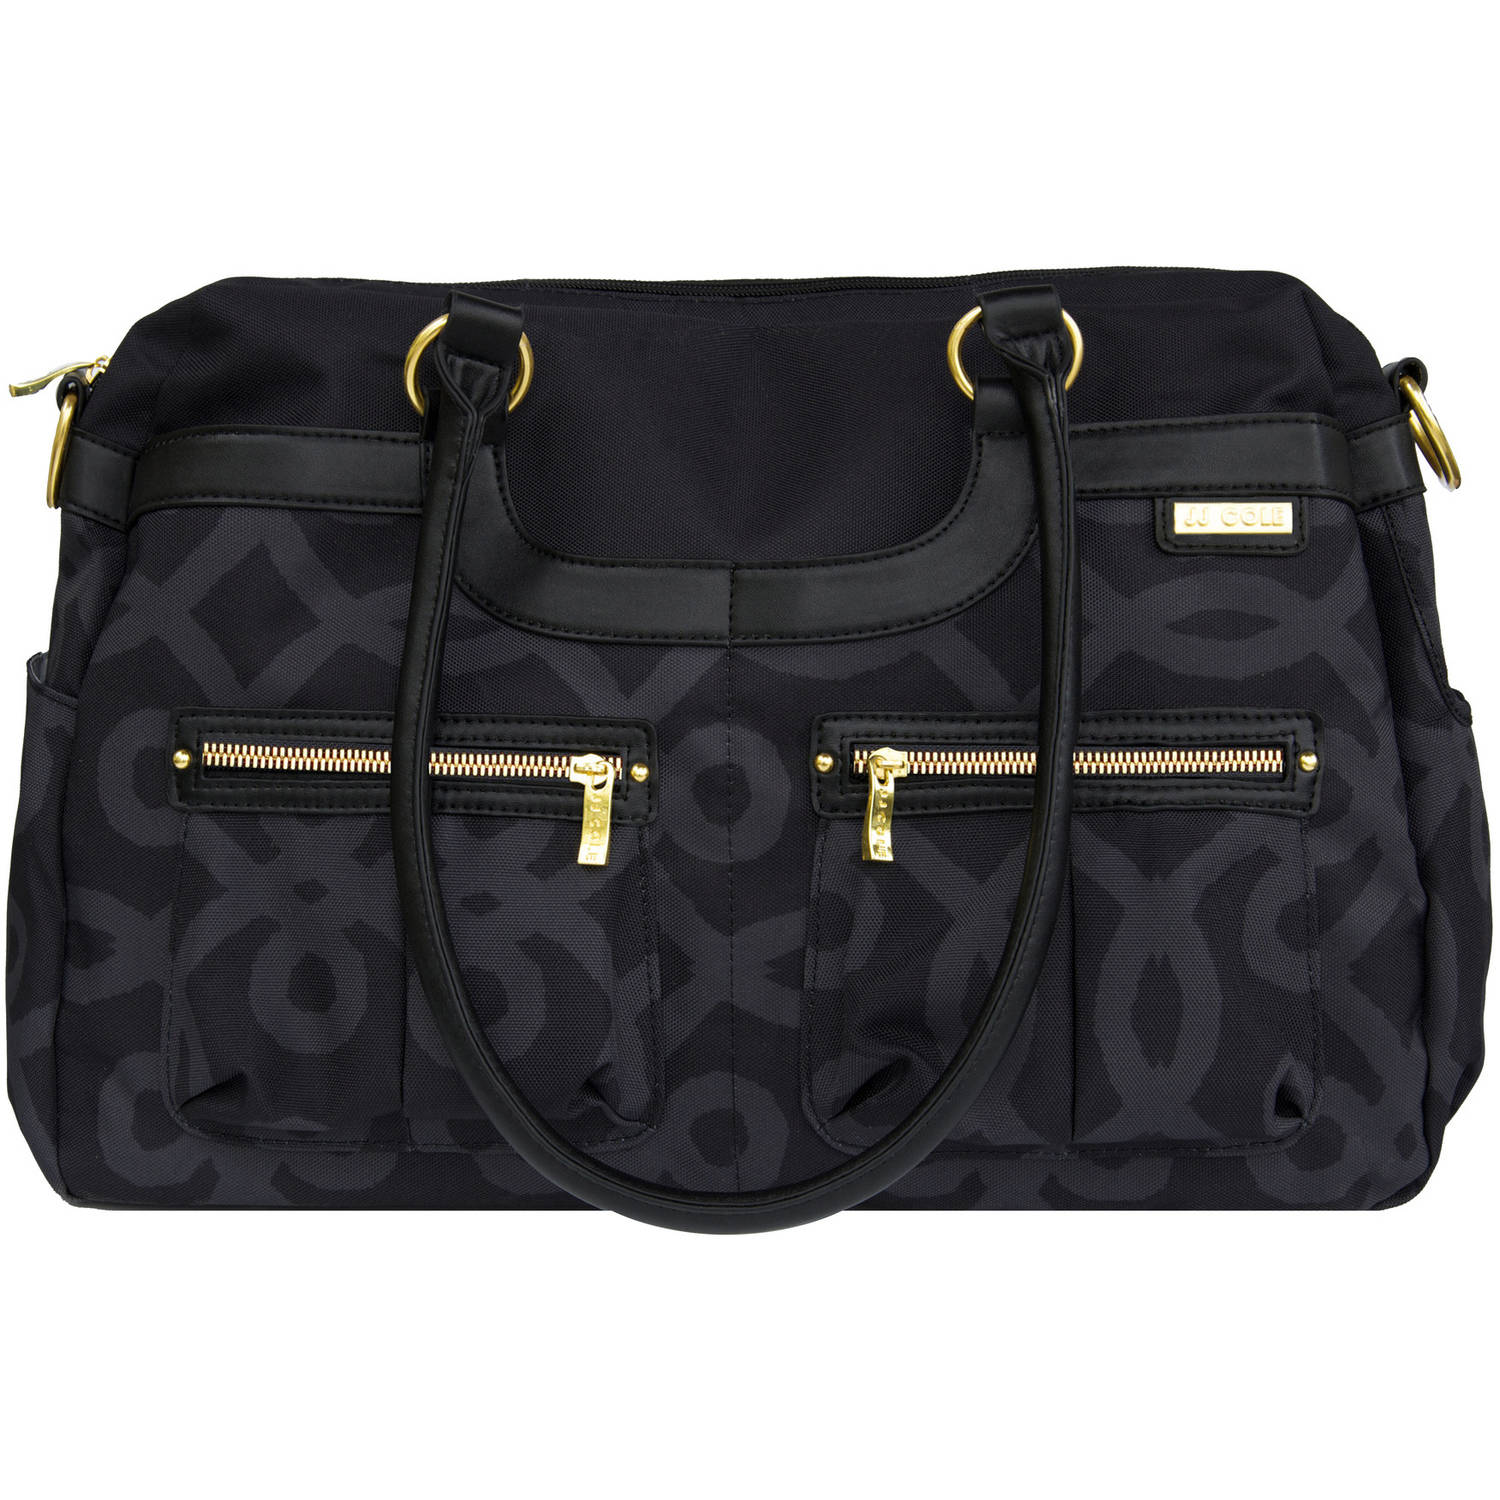 JJ Cole Satchel, Black and Gold